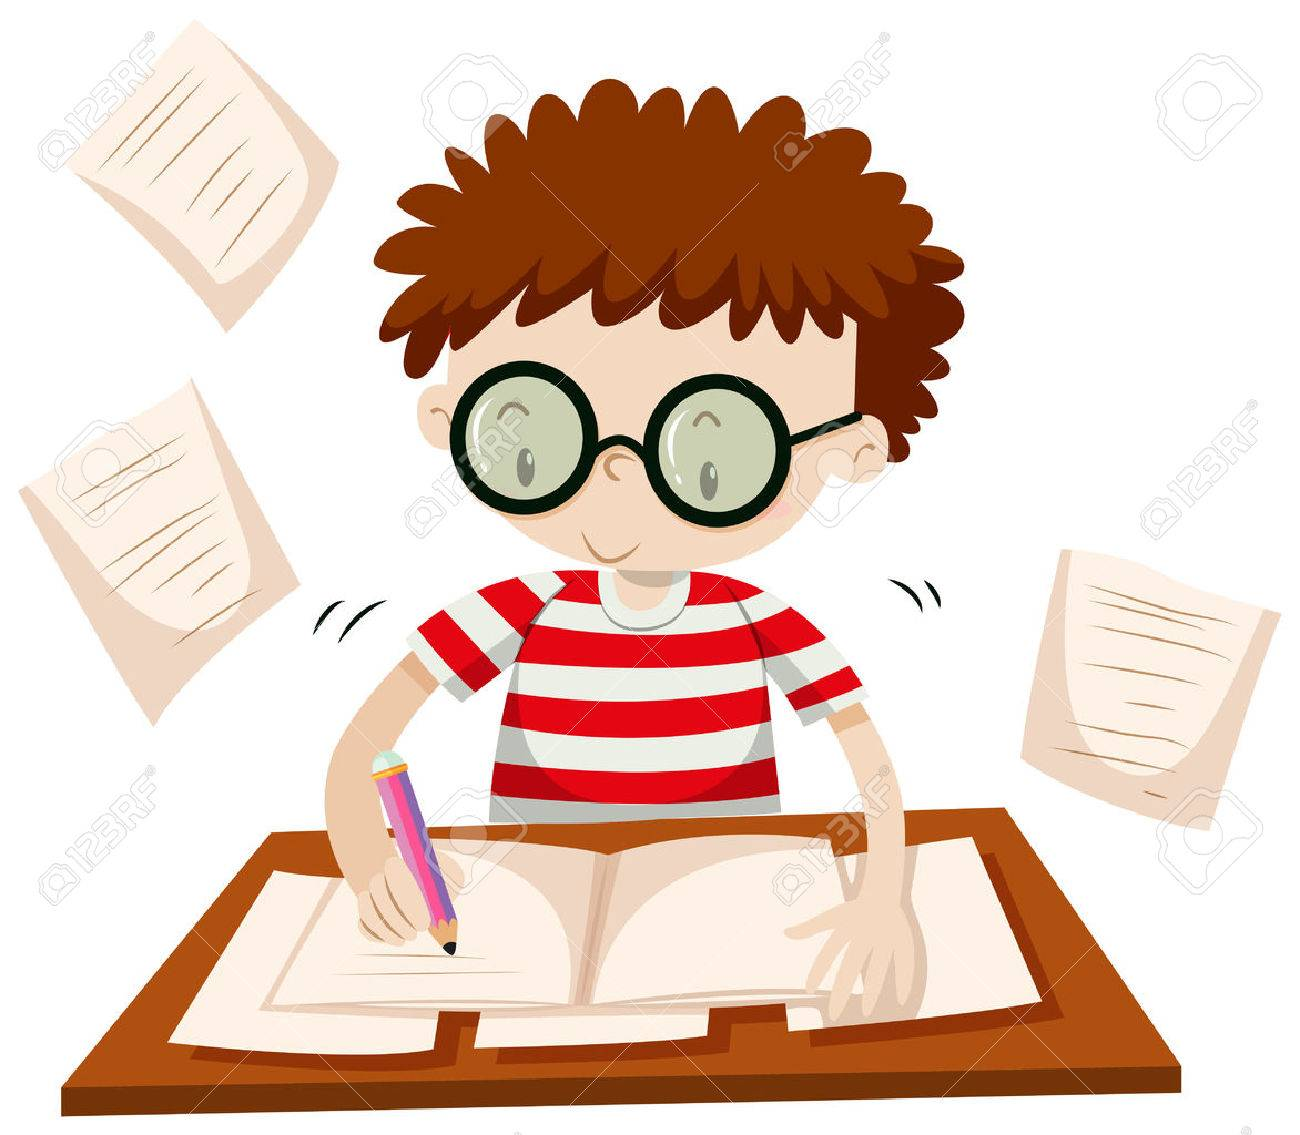 boy writing on the table illustration royalty free cliparts, vectors